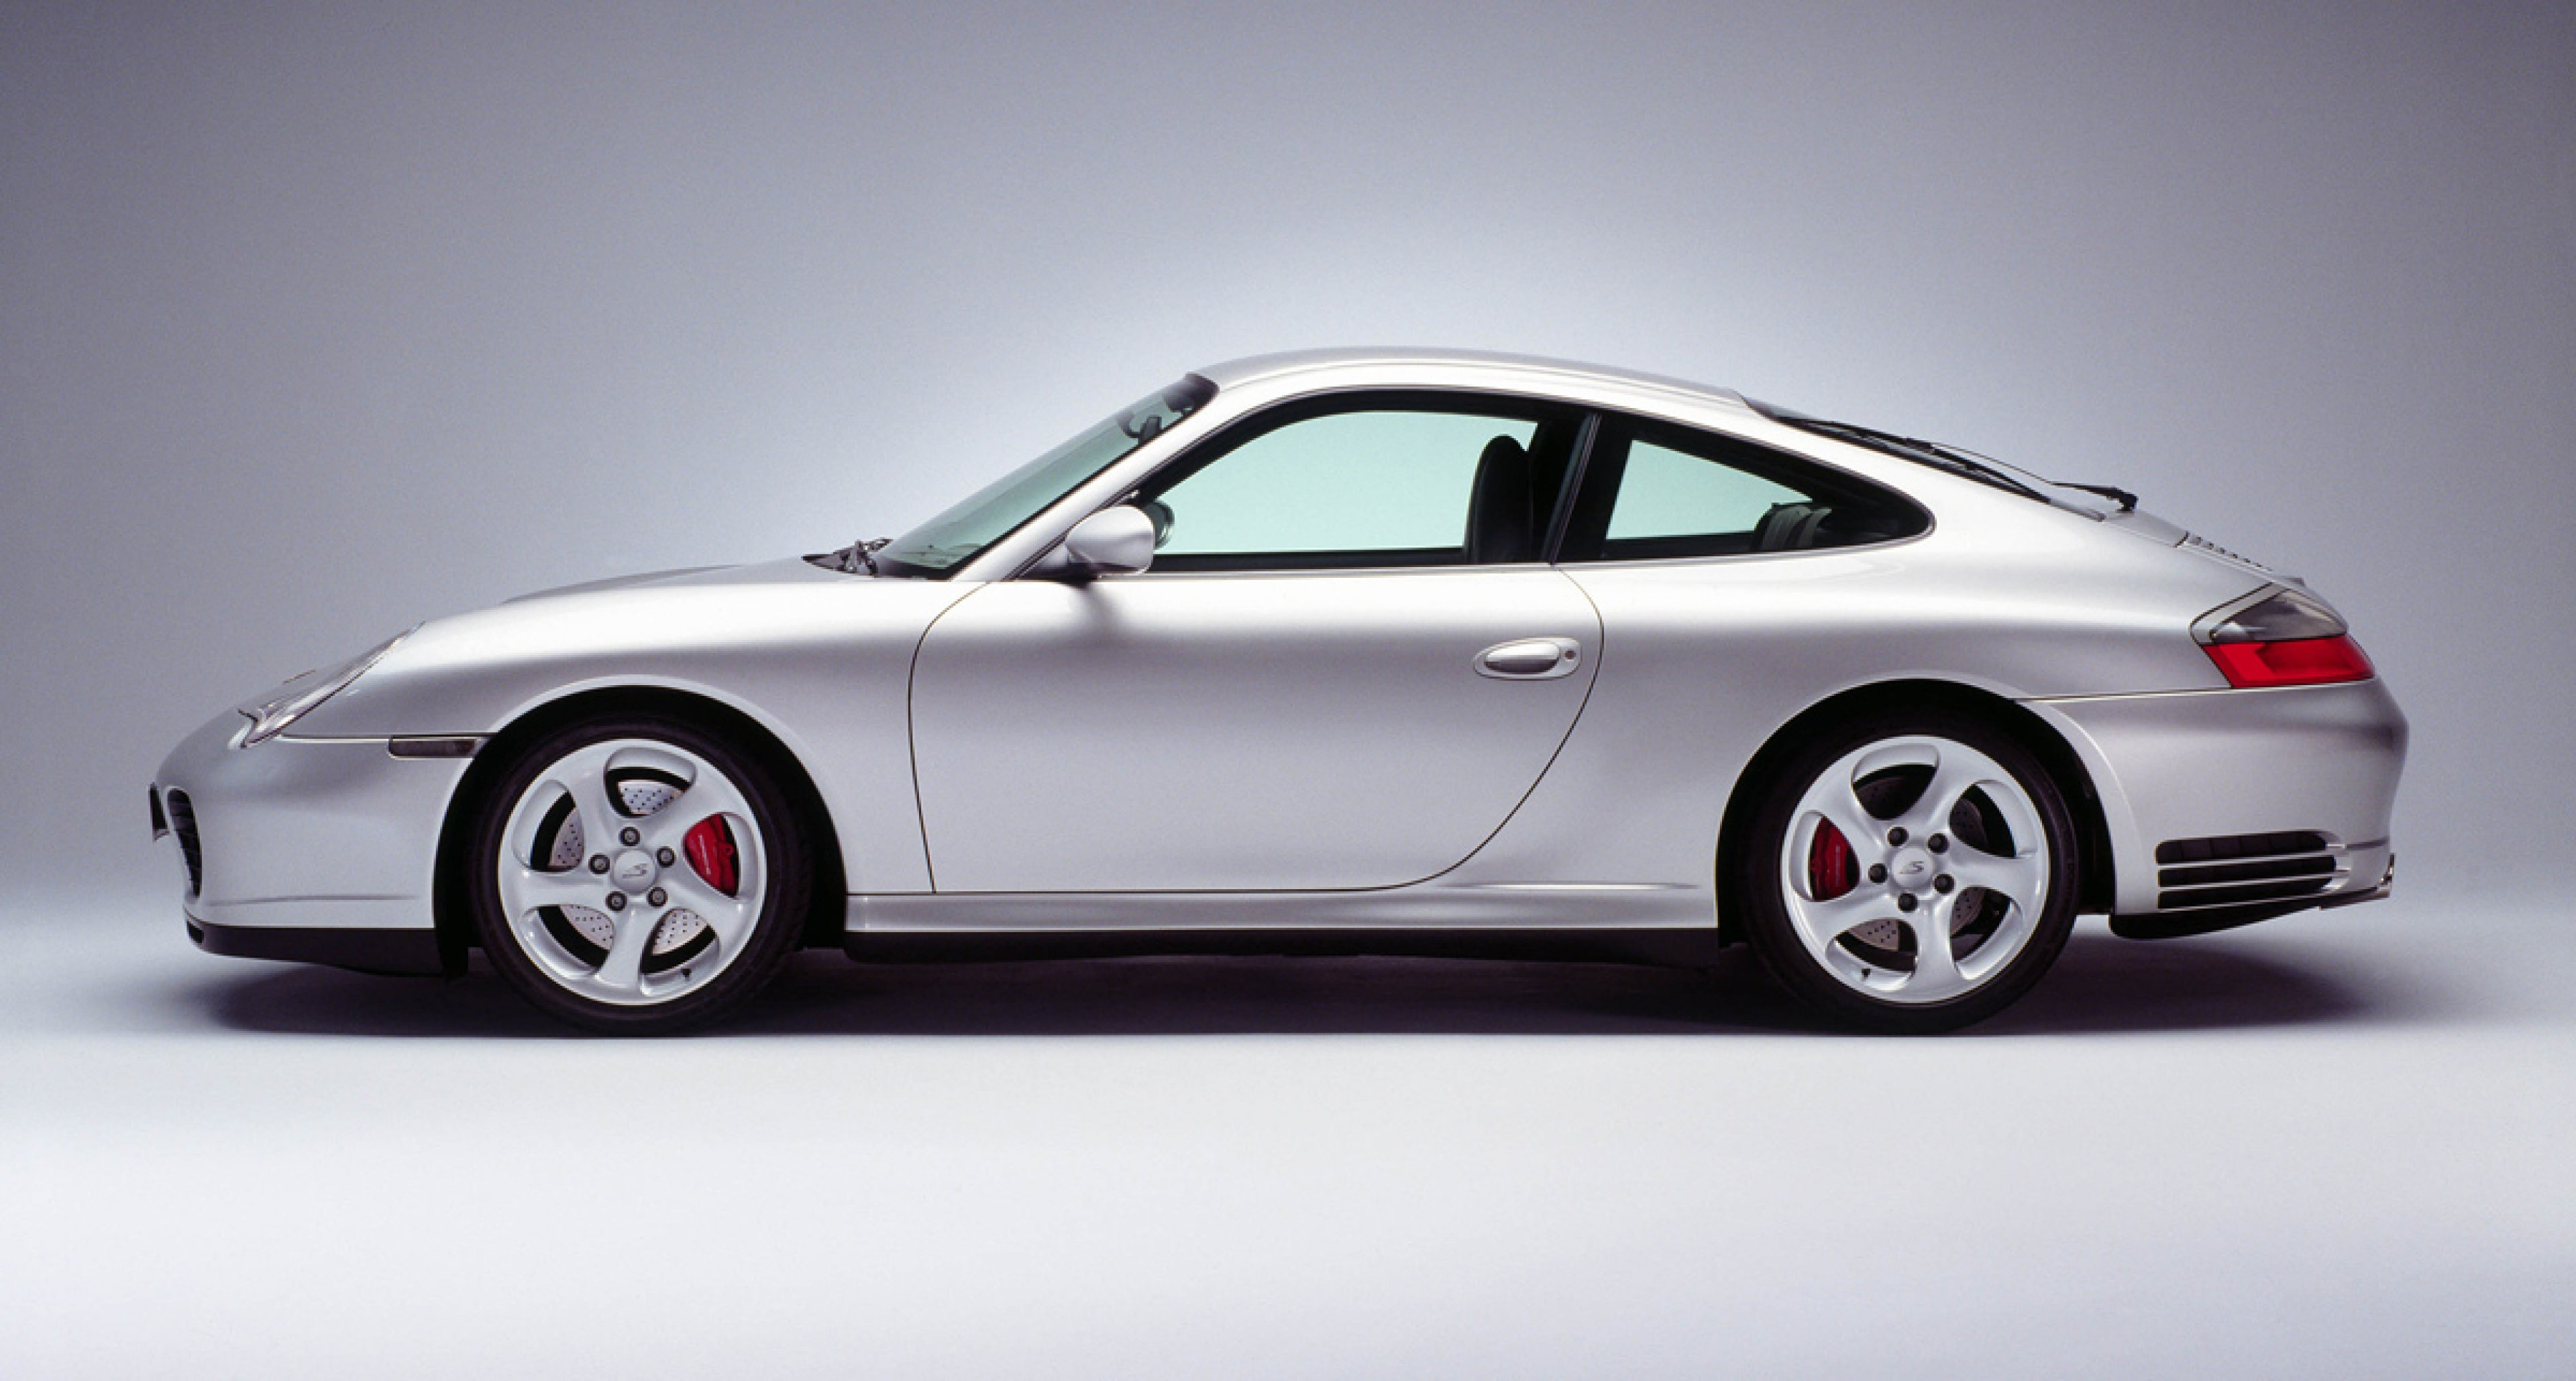 Porsche 911 996 Unloved With 175 000 Sales Classic Driver Magazine